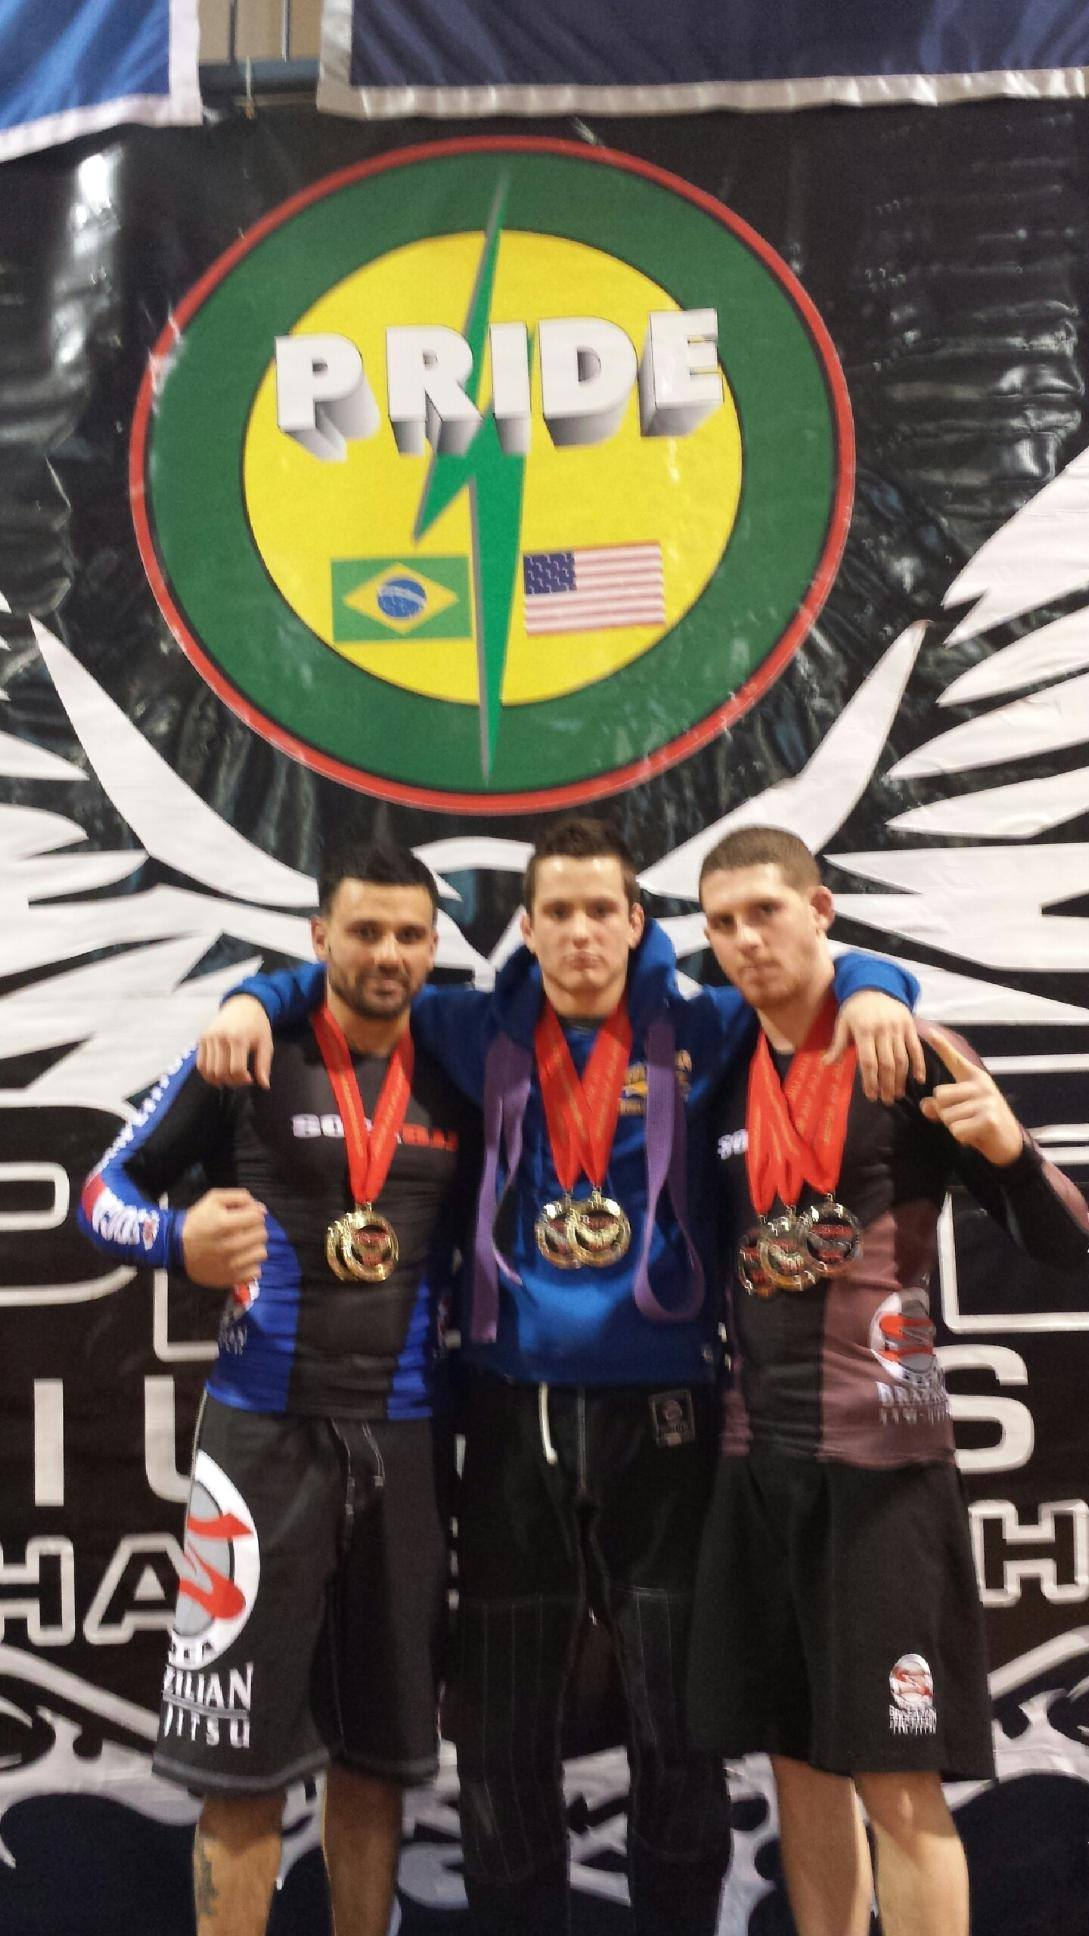 Members of GMA Soca BJJ show off their medals. Photo: Personal Archive